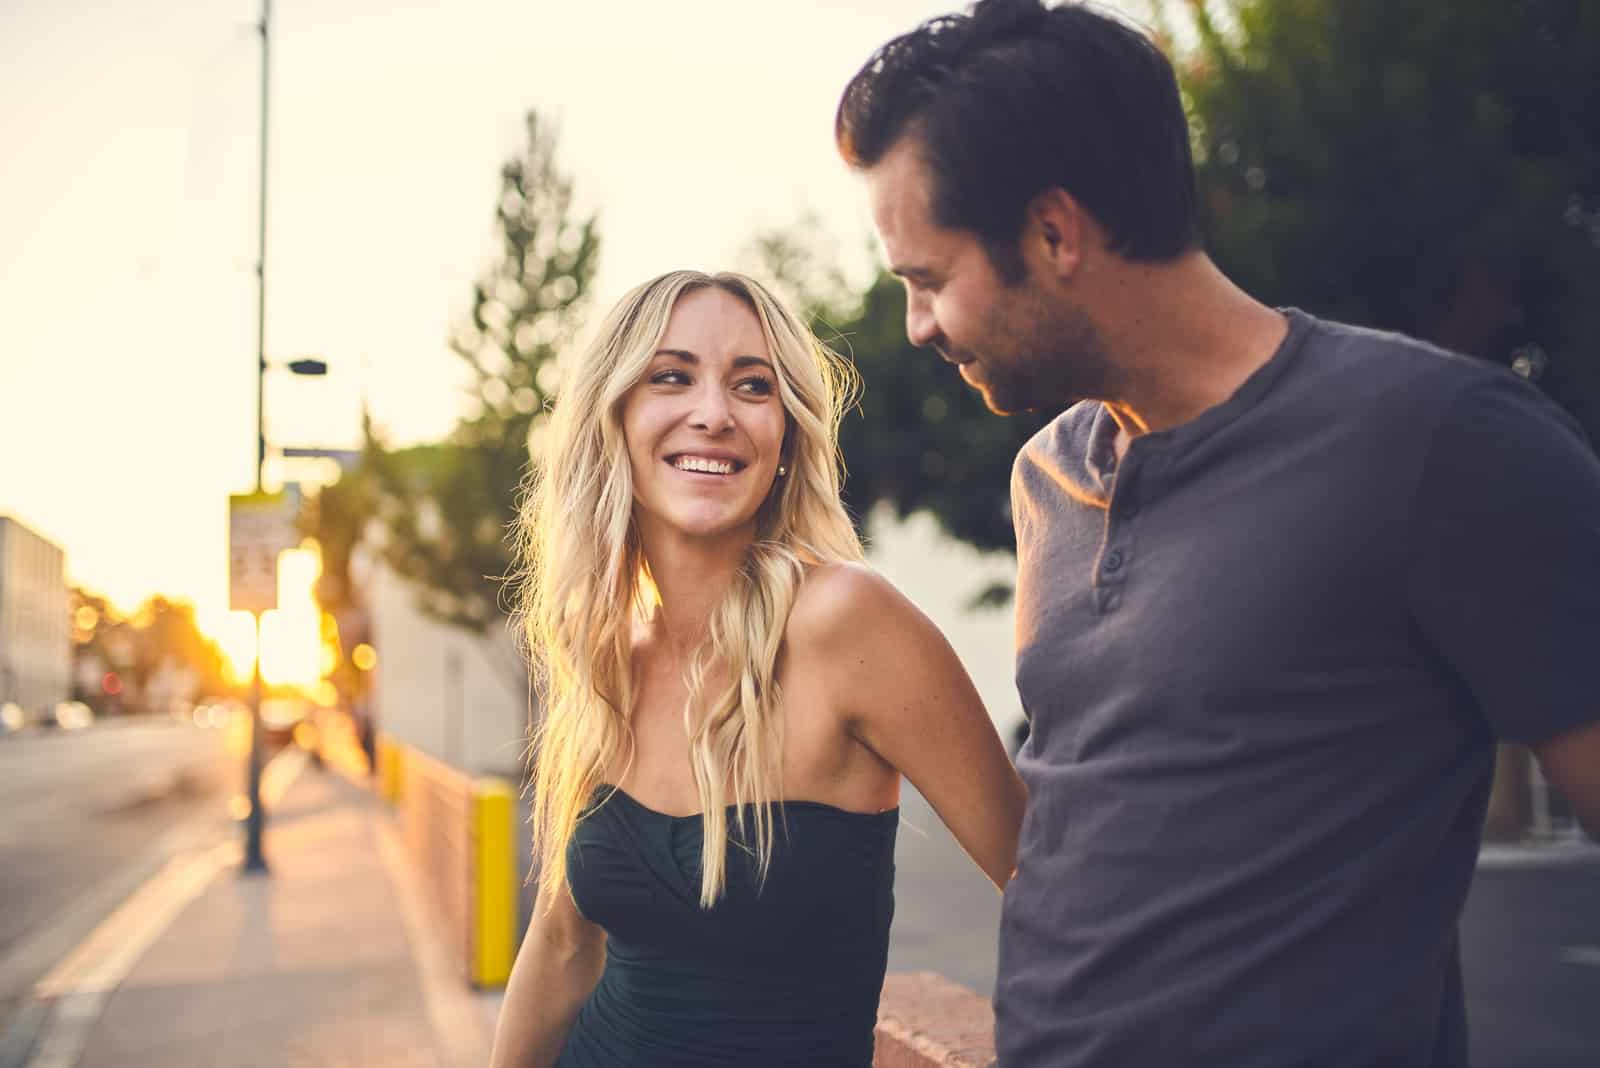 blonde woman smiling while looking at man outdoor